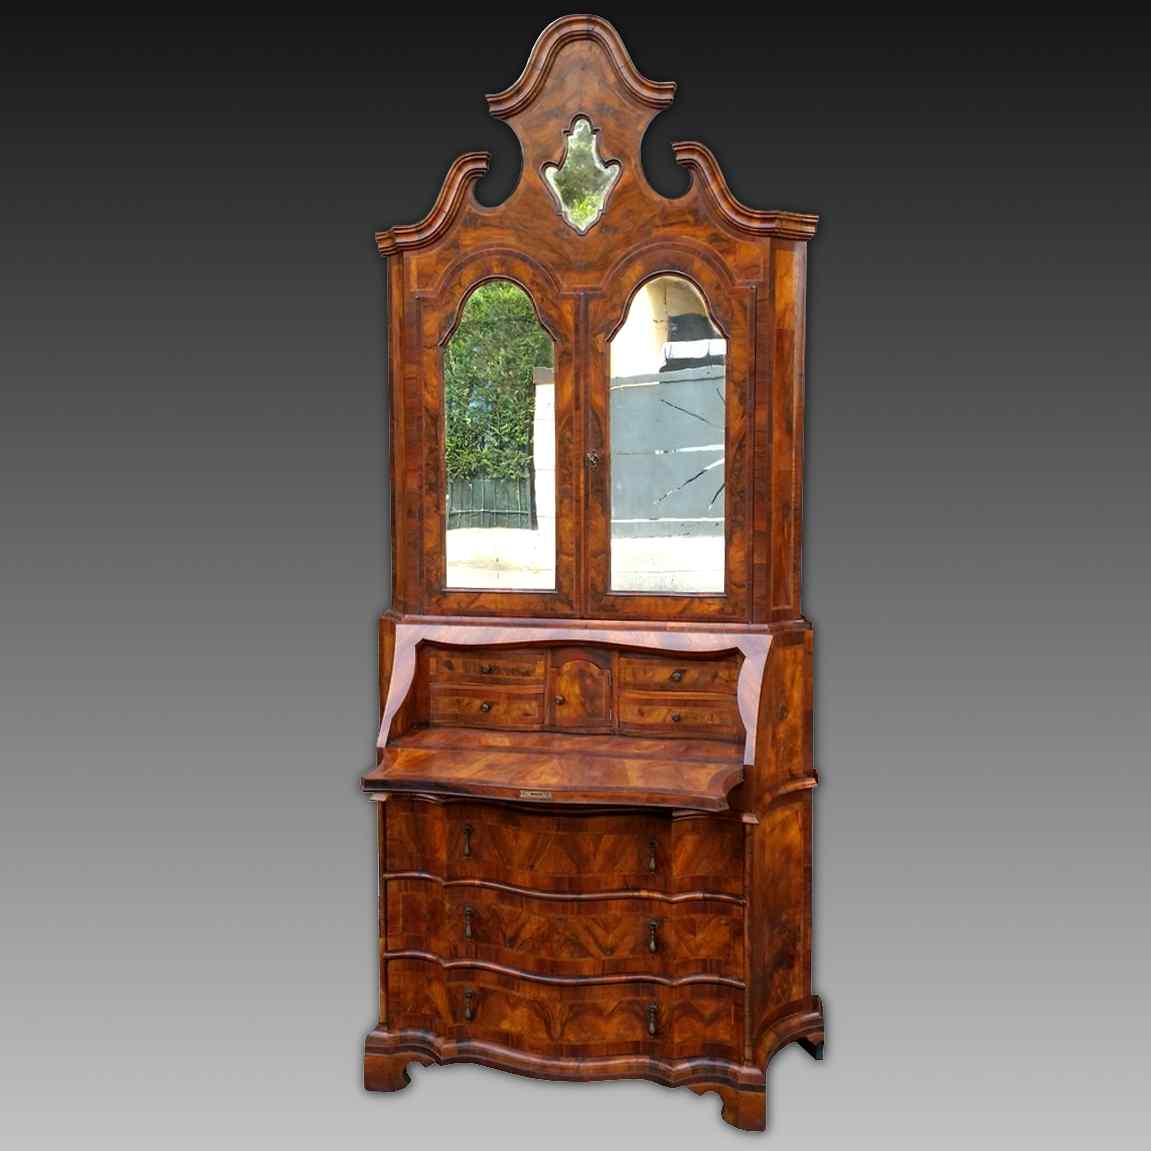 Antique Bookcase Bureau in walnut - Italy 19th century